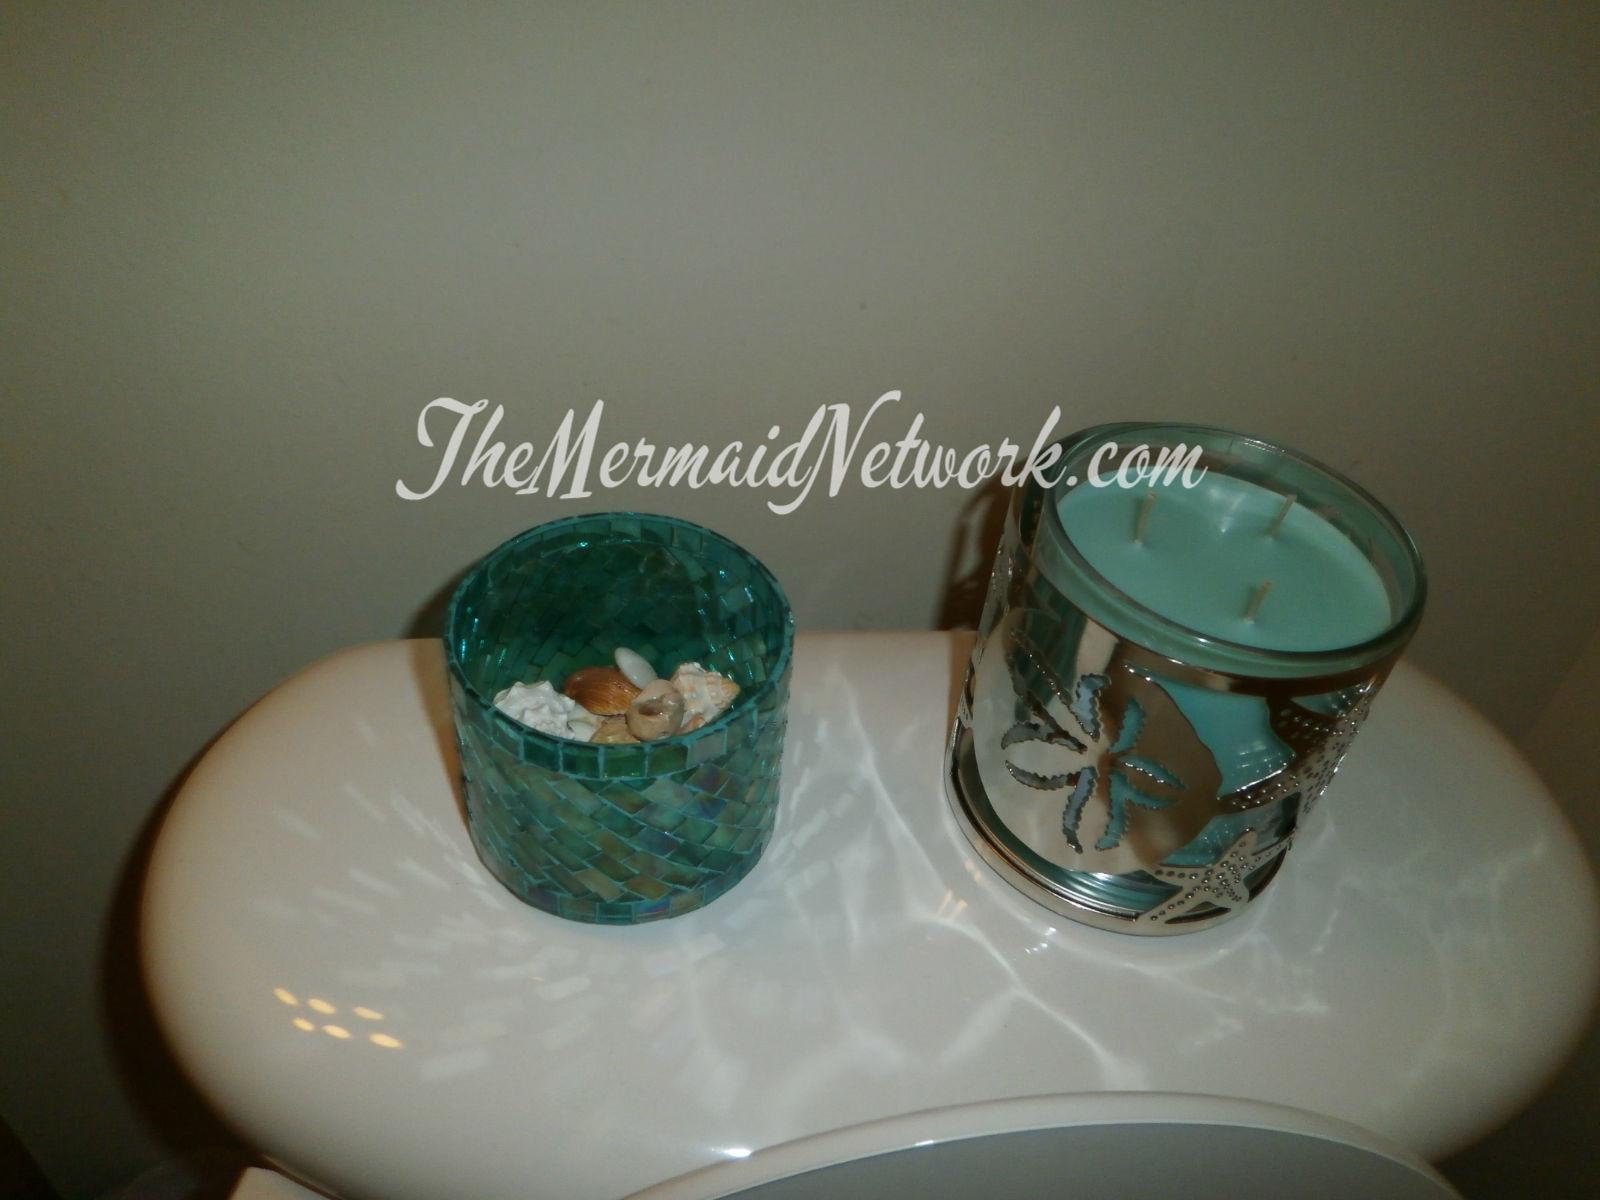 Diy Bathroom Decor Part Mermaid Network